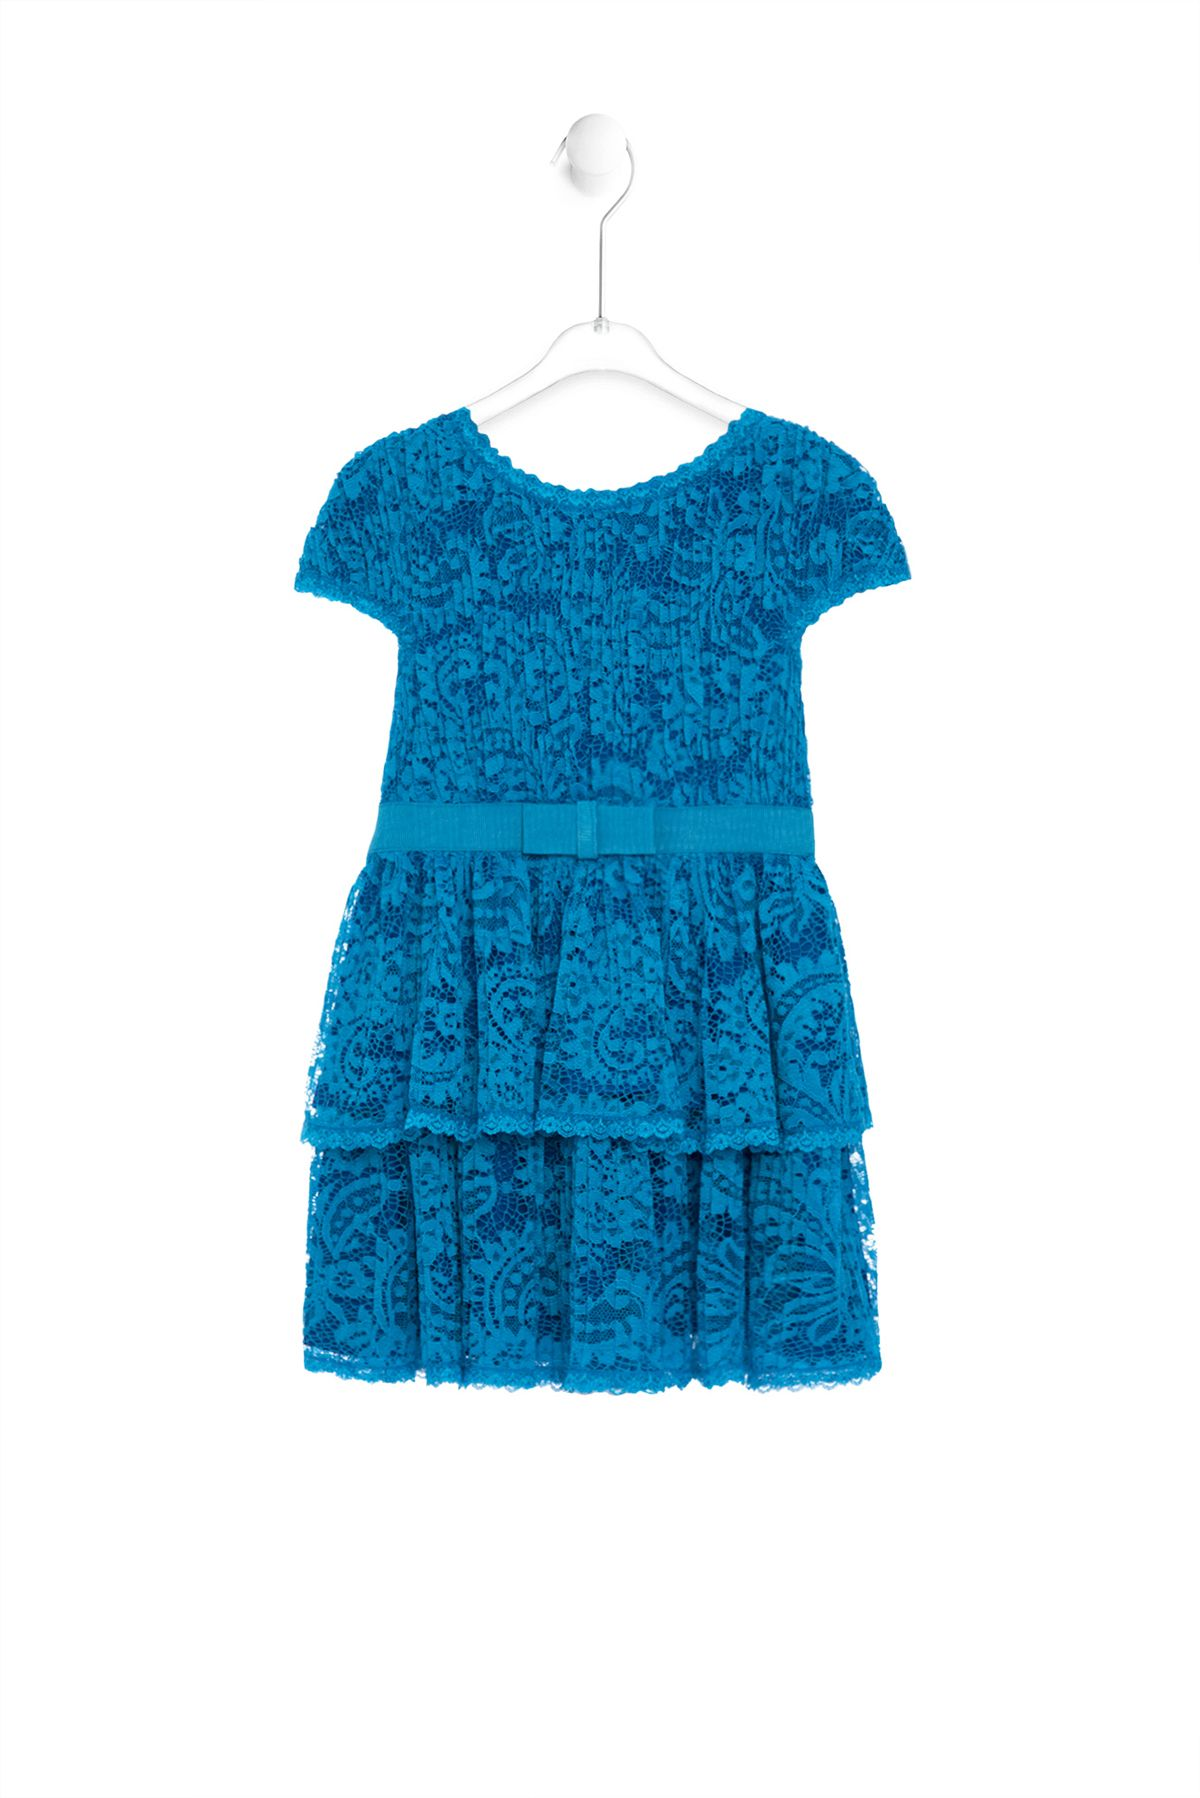 Tadashi Shoji Kids l Beaming with brightness, this darling dress features delicate pleated lace, cap sleeves, and scallop lace trims. The tiered ruffle skirt is cinched with a sweet grosgrain ribbon belt. Dress is fully lined in our signature jersey to ensure comfort.